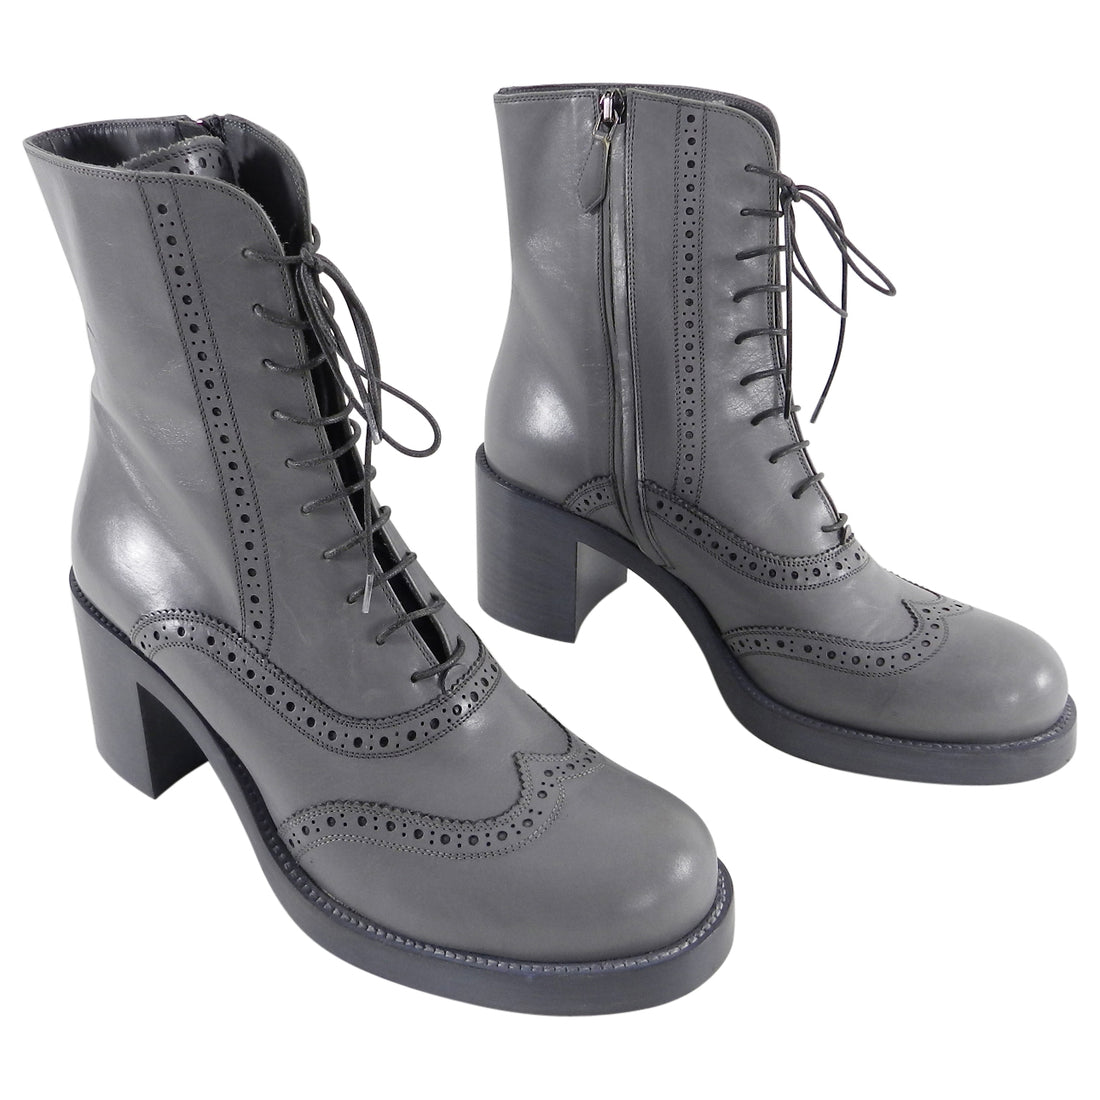 Miu Miu Dove Gray Oxford Lace Up Ankle Boots - 39